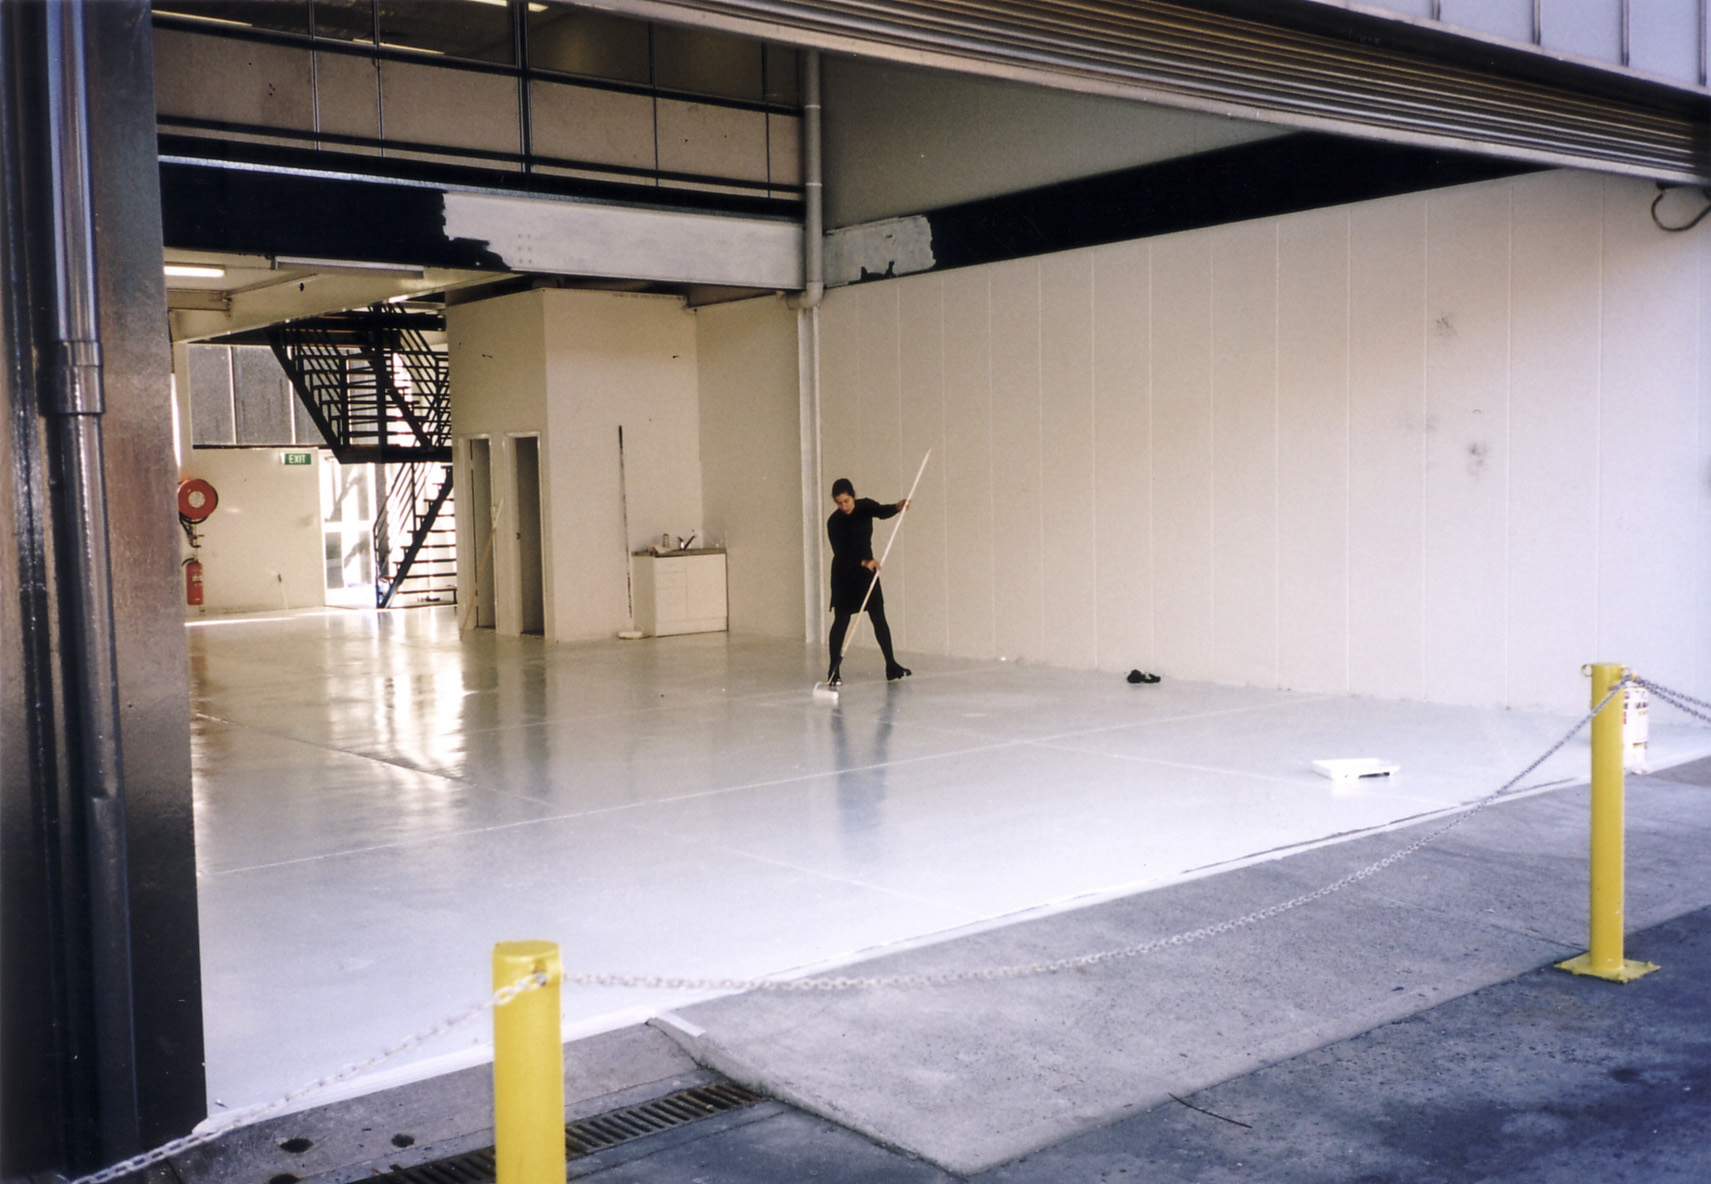 2001 workshop painting.jpg